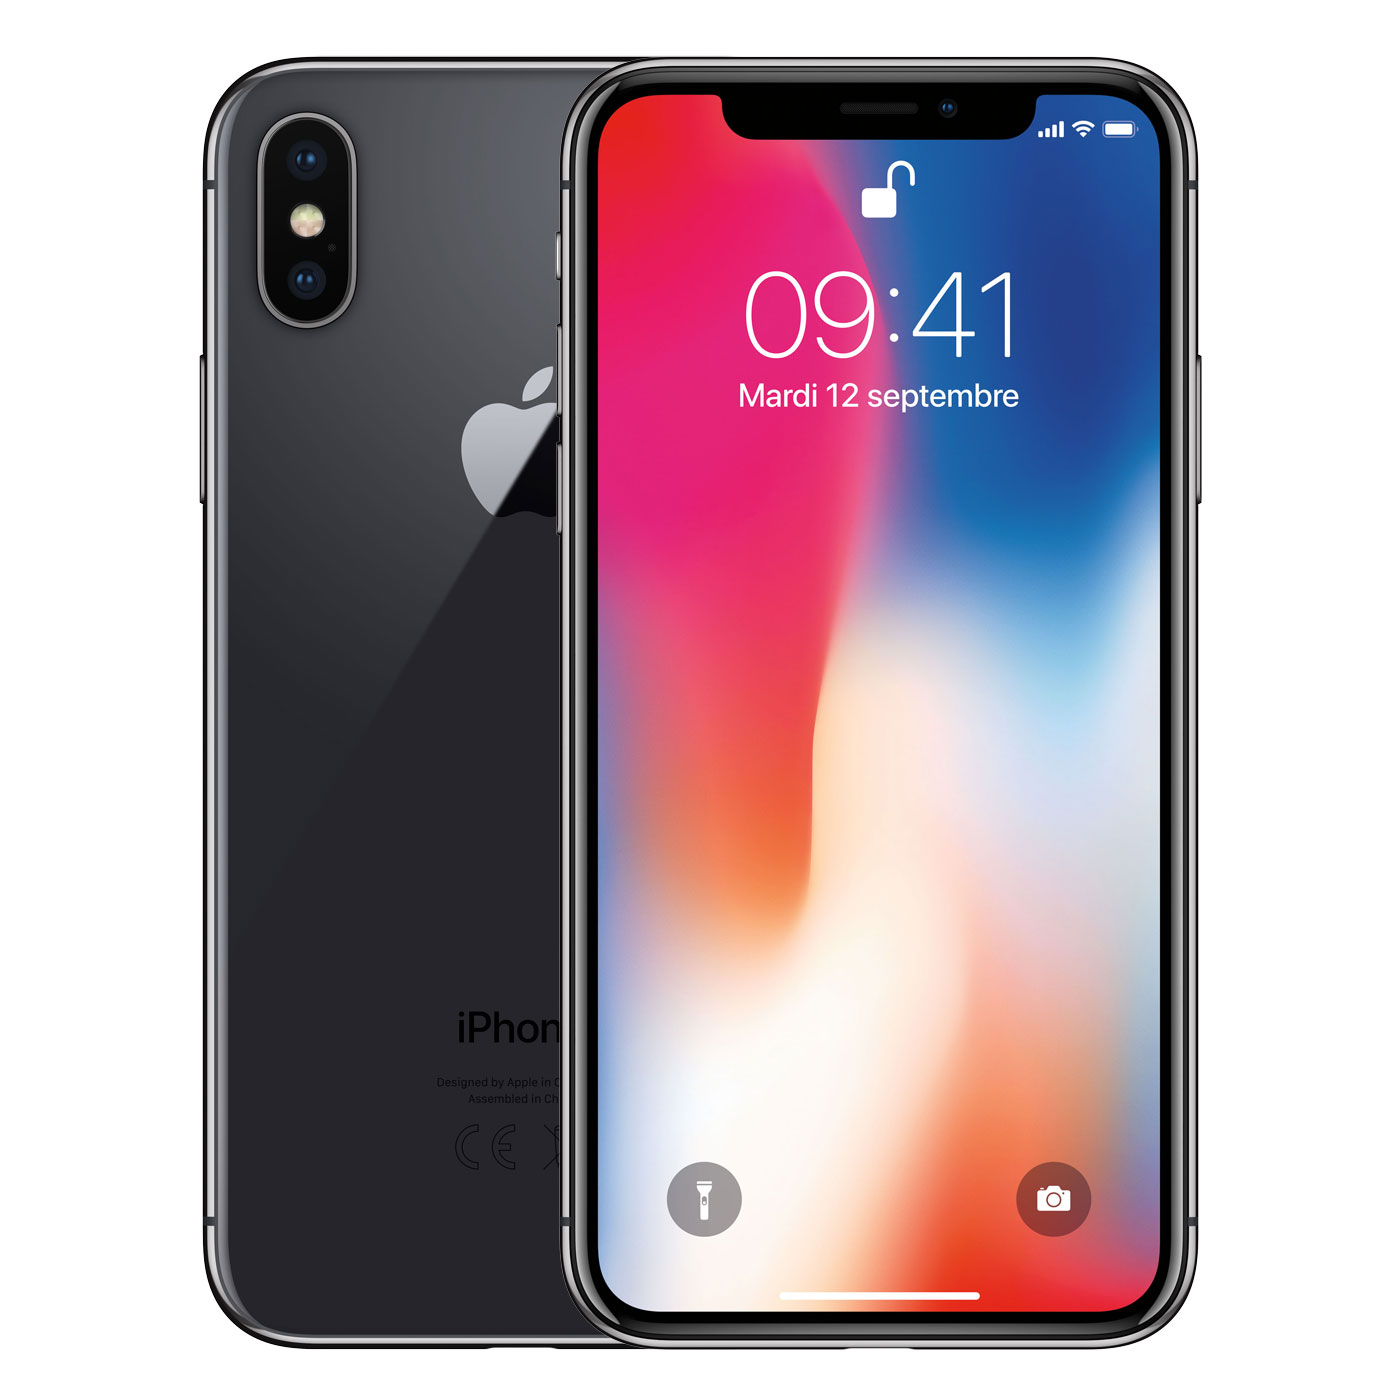 apple iphone x 64 go gris sid ral mobile smartphone apple sur. Black Bedroom Furniture Sets. Home Design Ideas